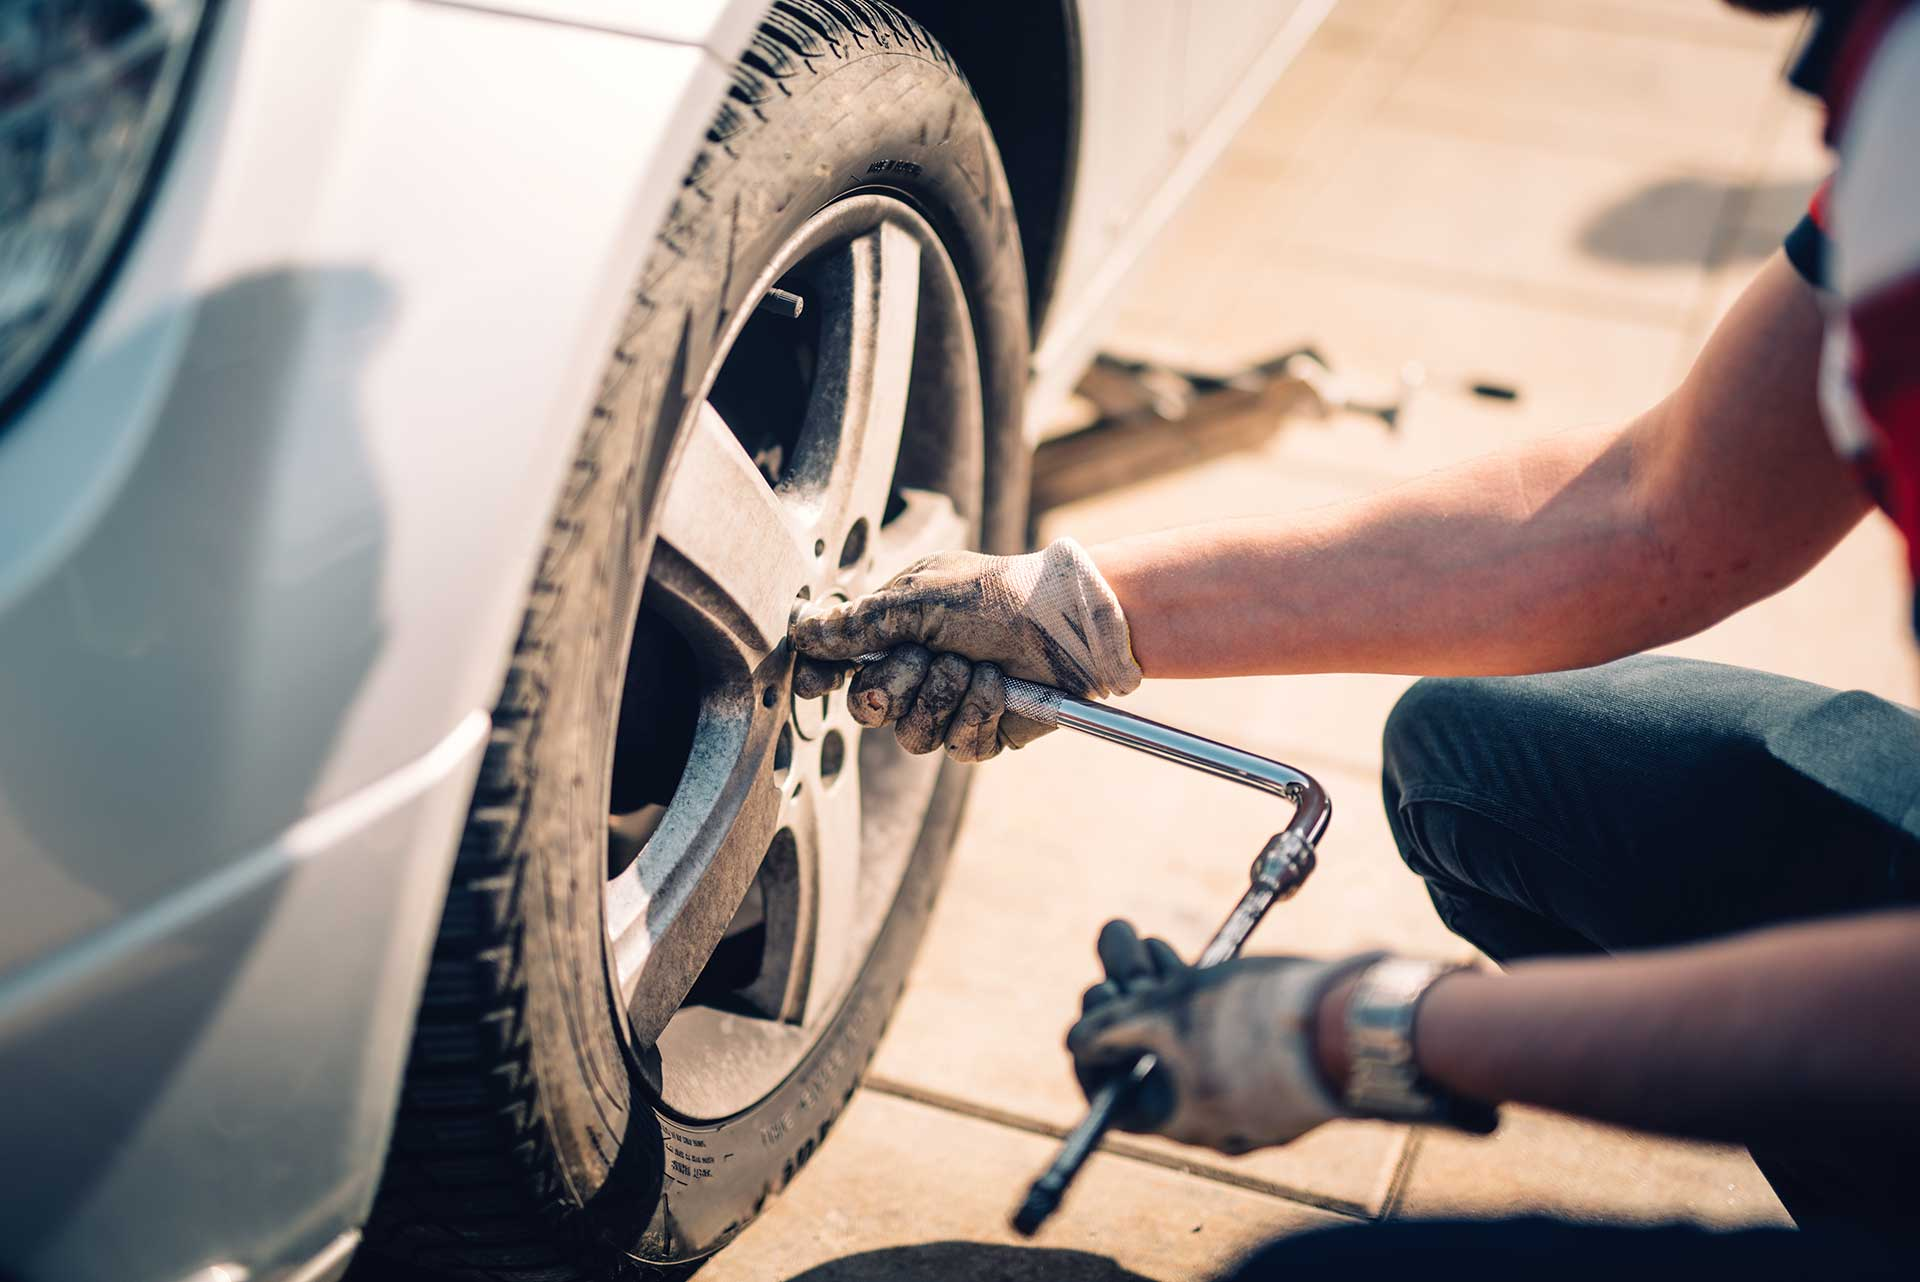 Tire repair and replacement in Pasco, WA also, serving Richland, WA and Tri-Cities area